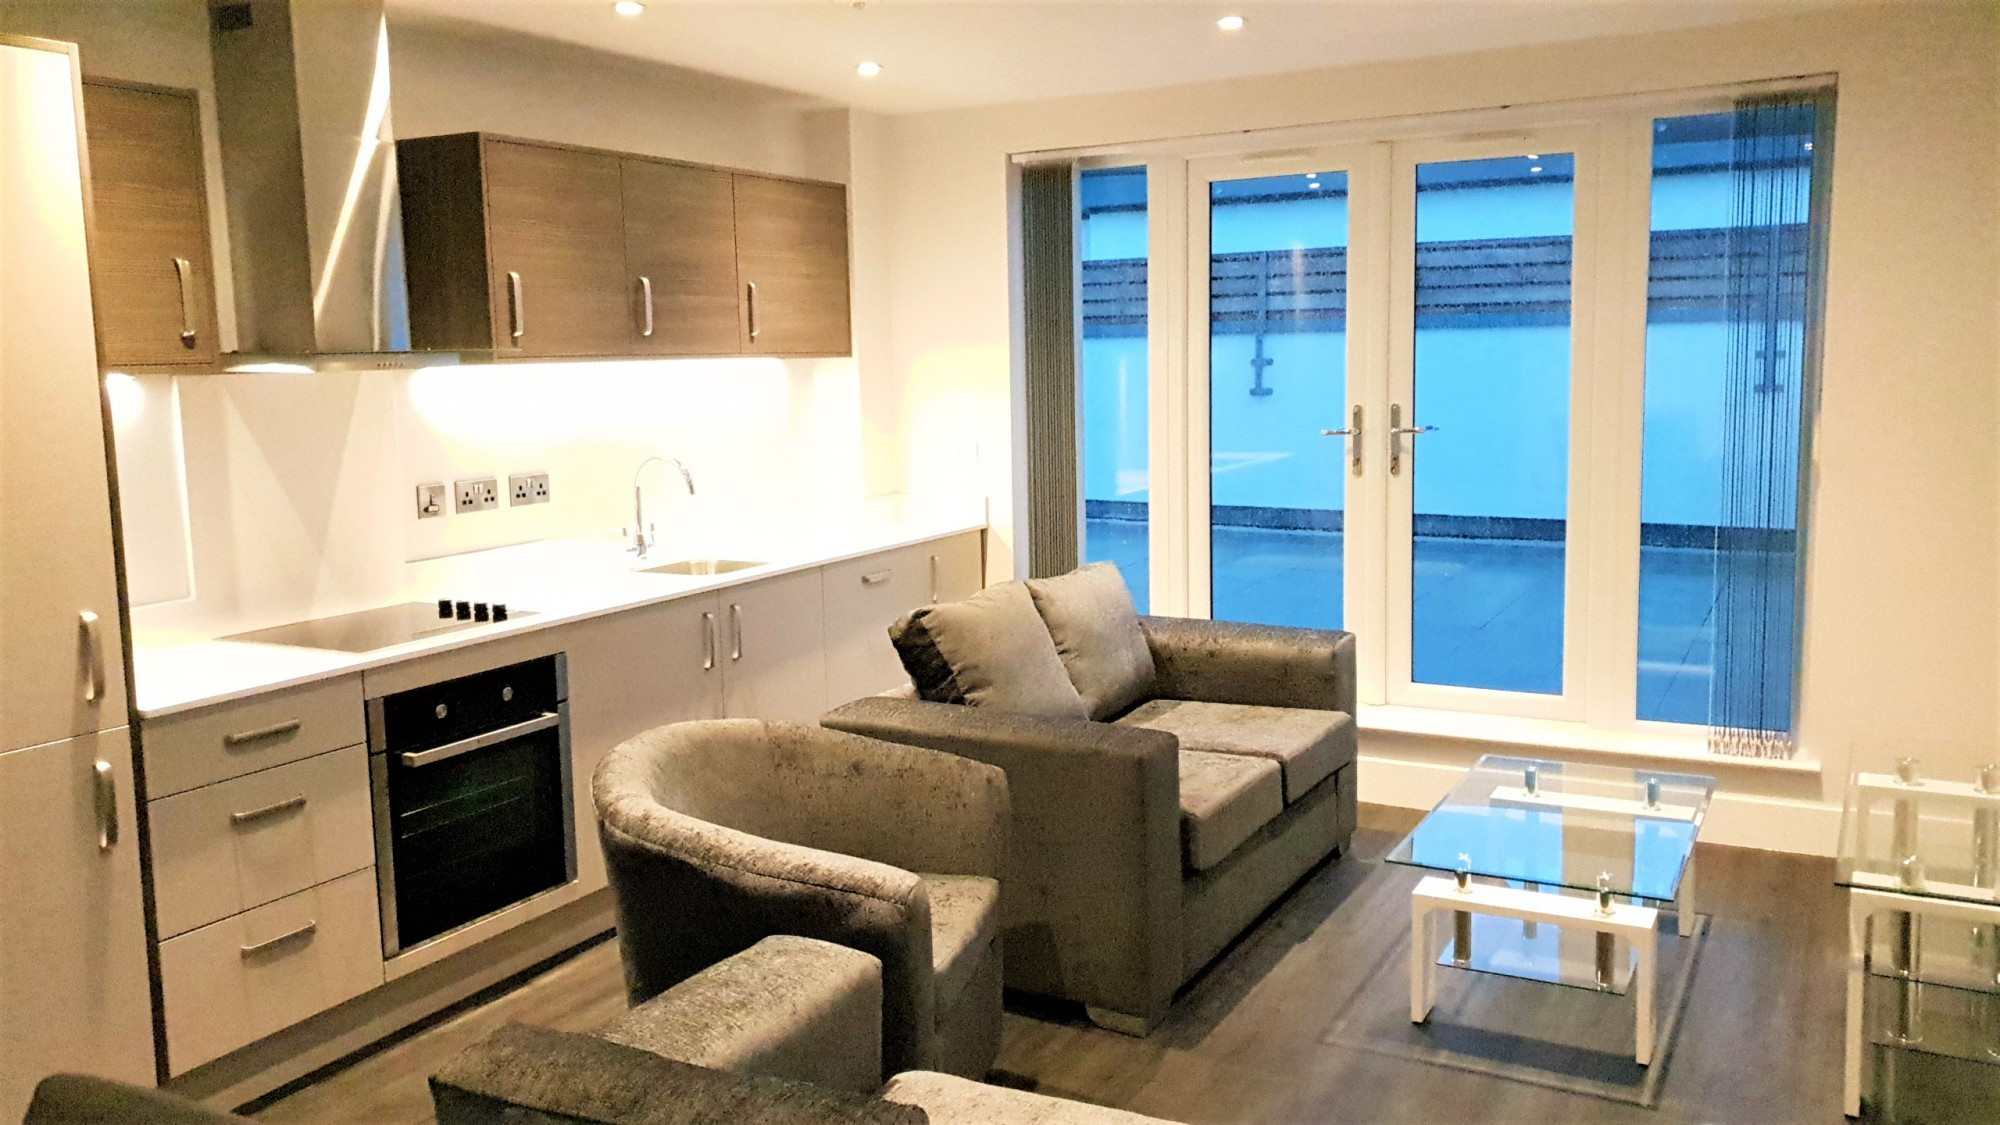 2 Bed Apartment Aria Apartments Leicester Le1 Zest Properties